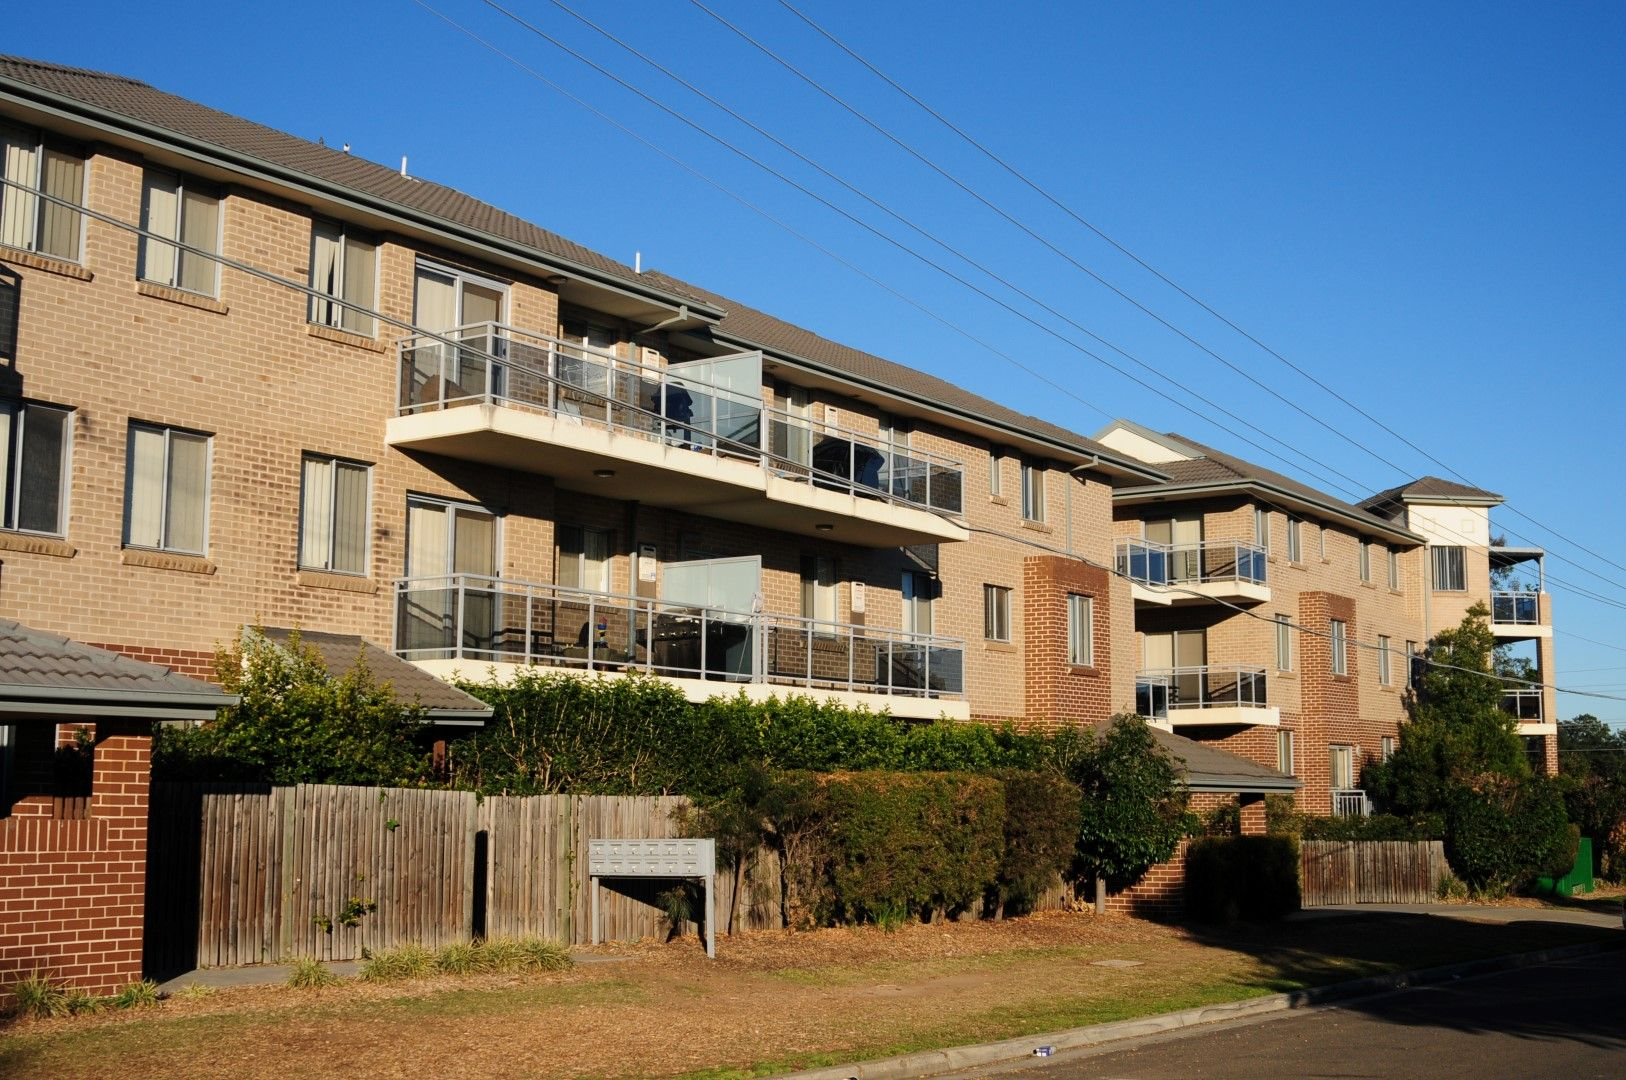 51/14-20 Parkes Avenue, Werrington NSW 2747, Image 0